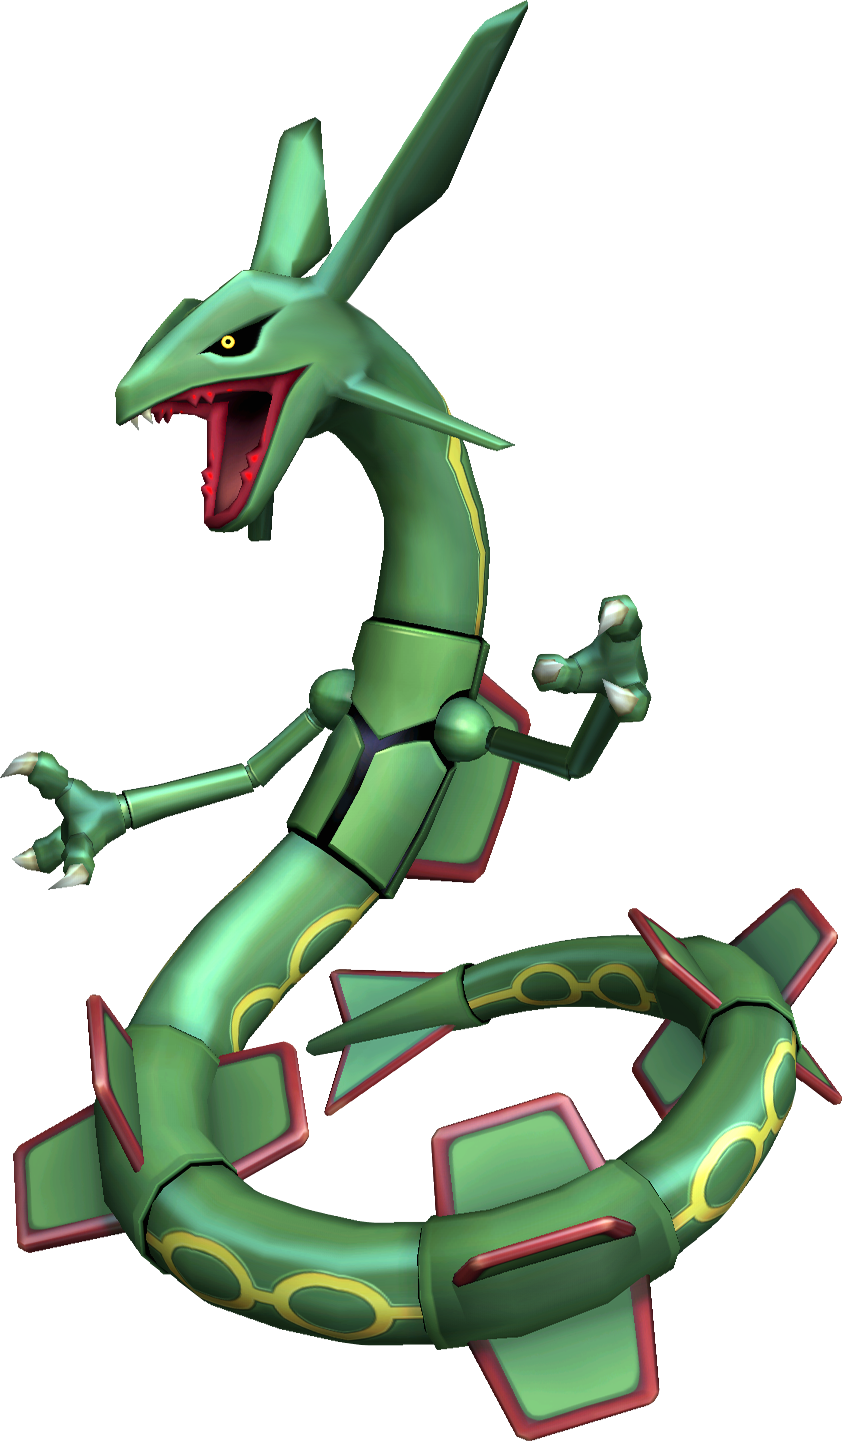 Image super smash bros. Rayquaza transparent realistic clipart black and white library